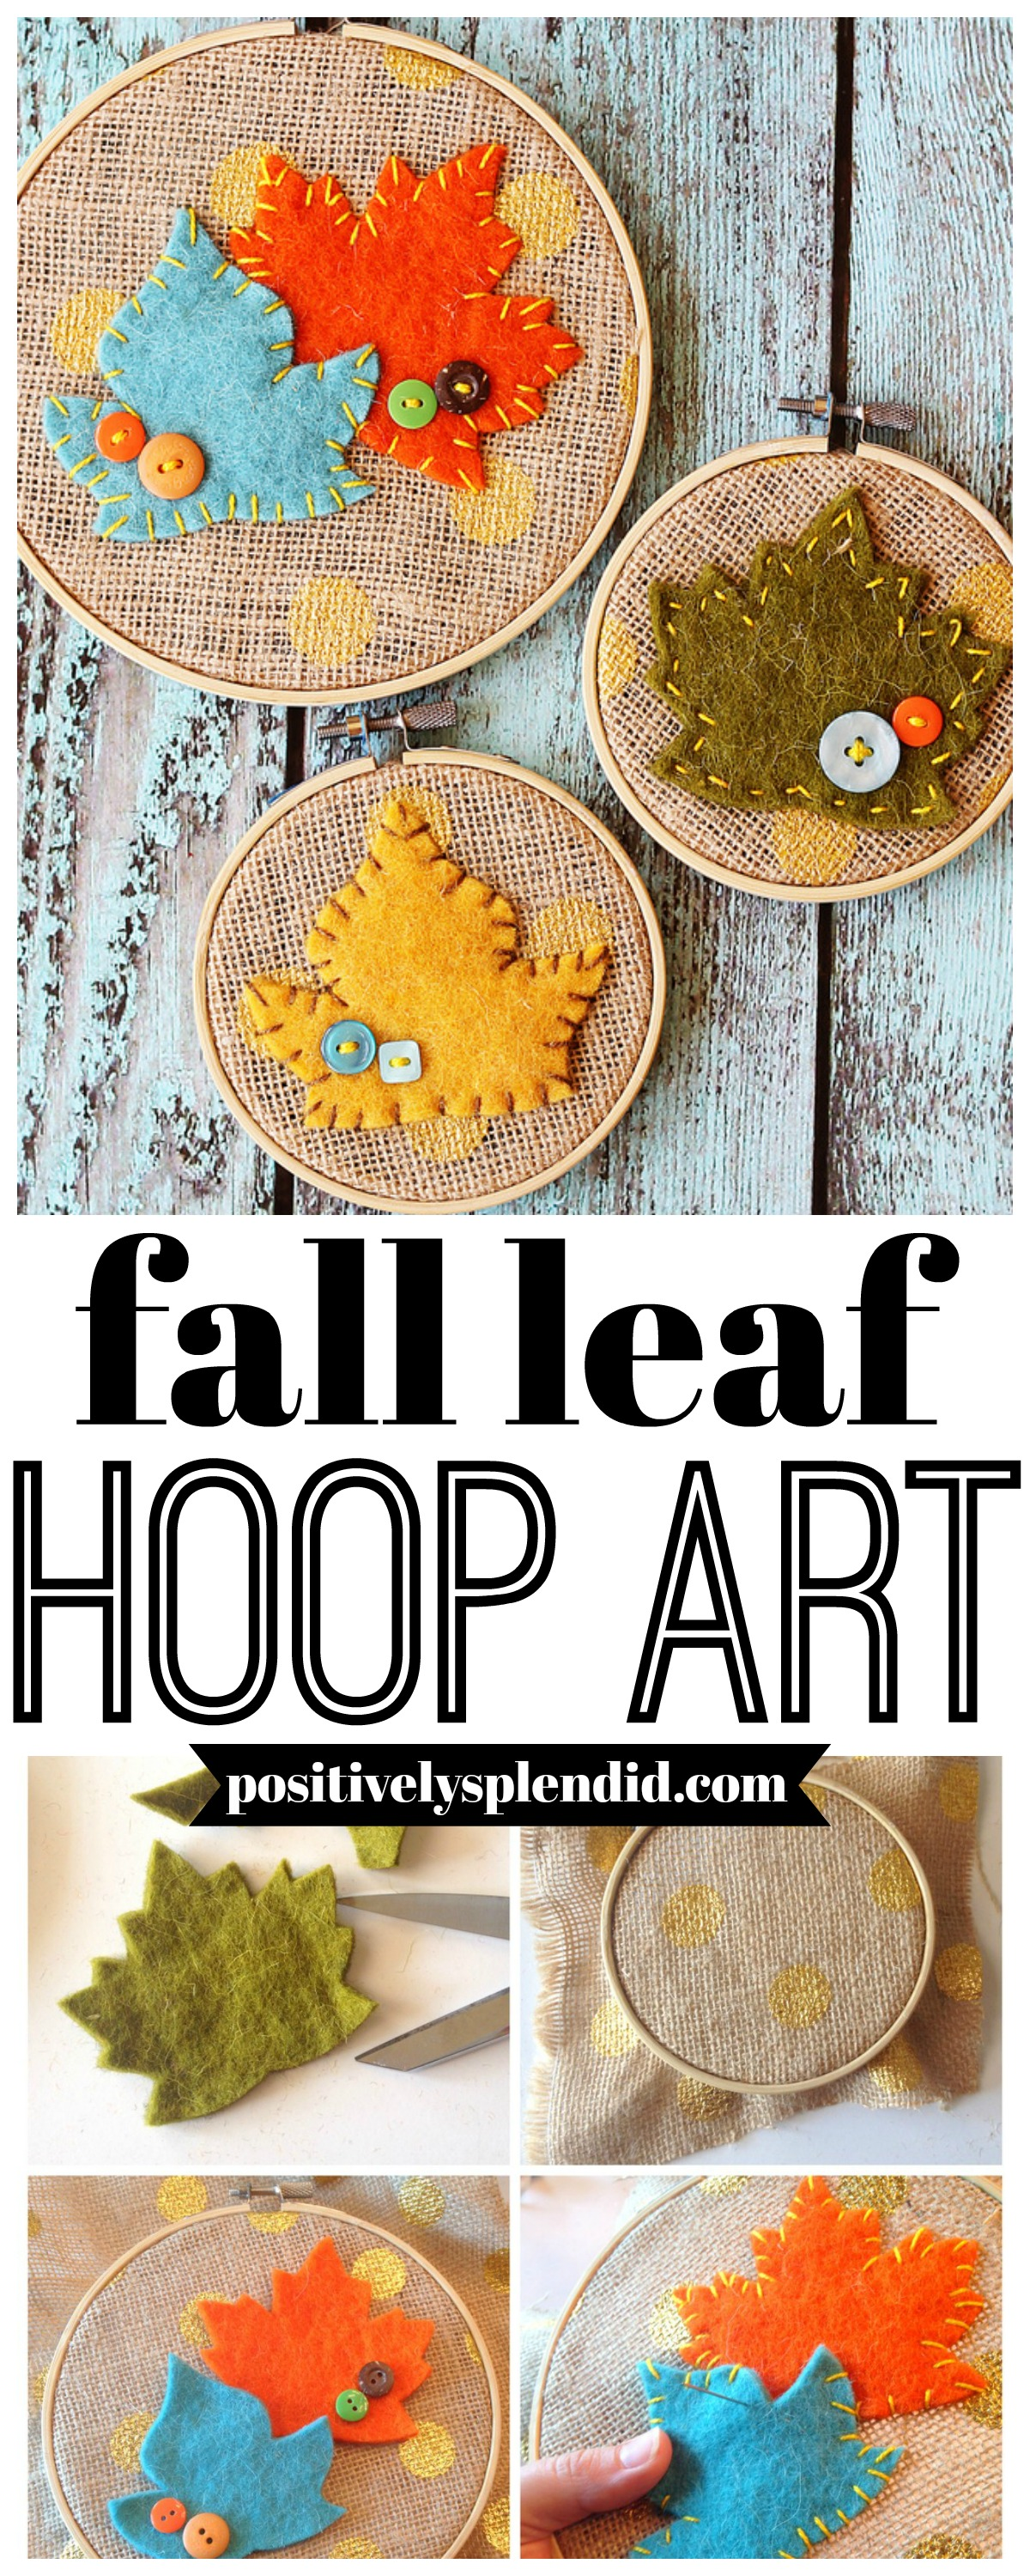 Fall Leaf Hoop Art